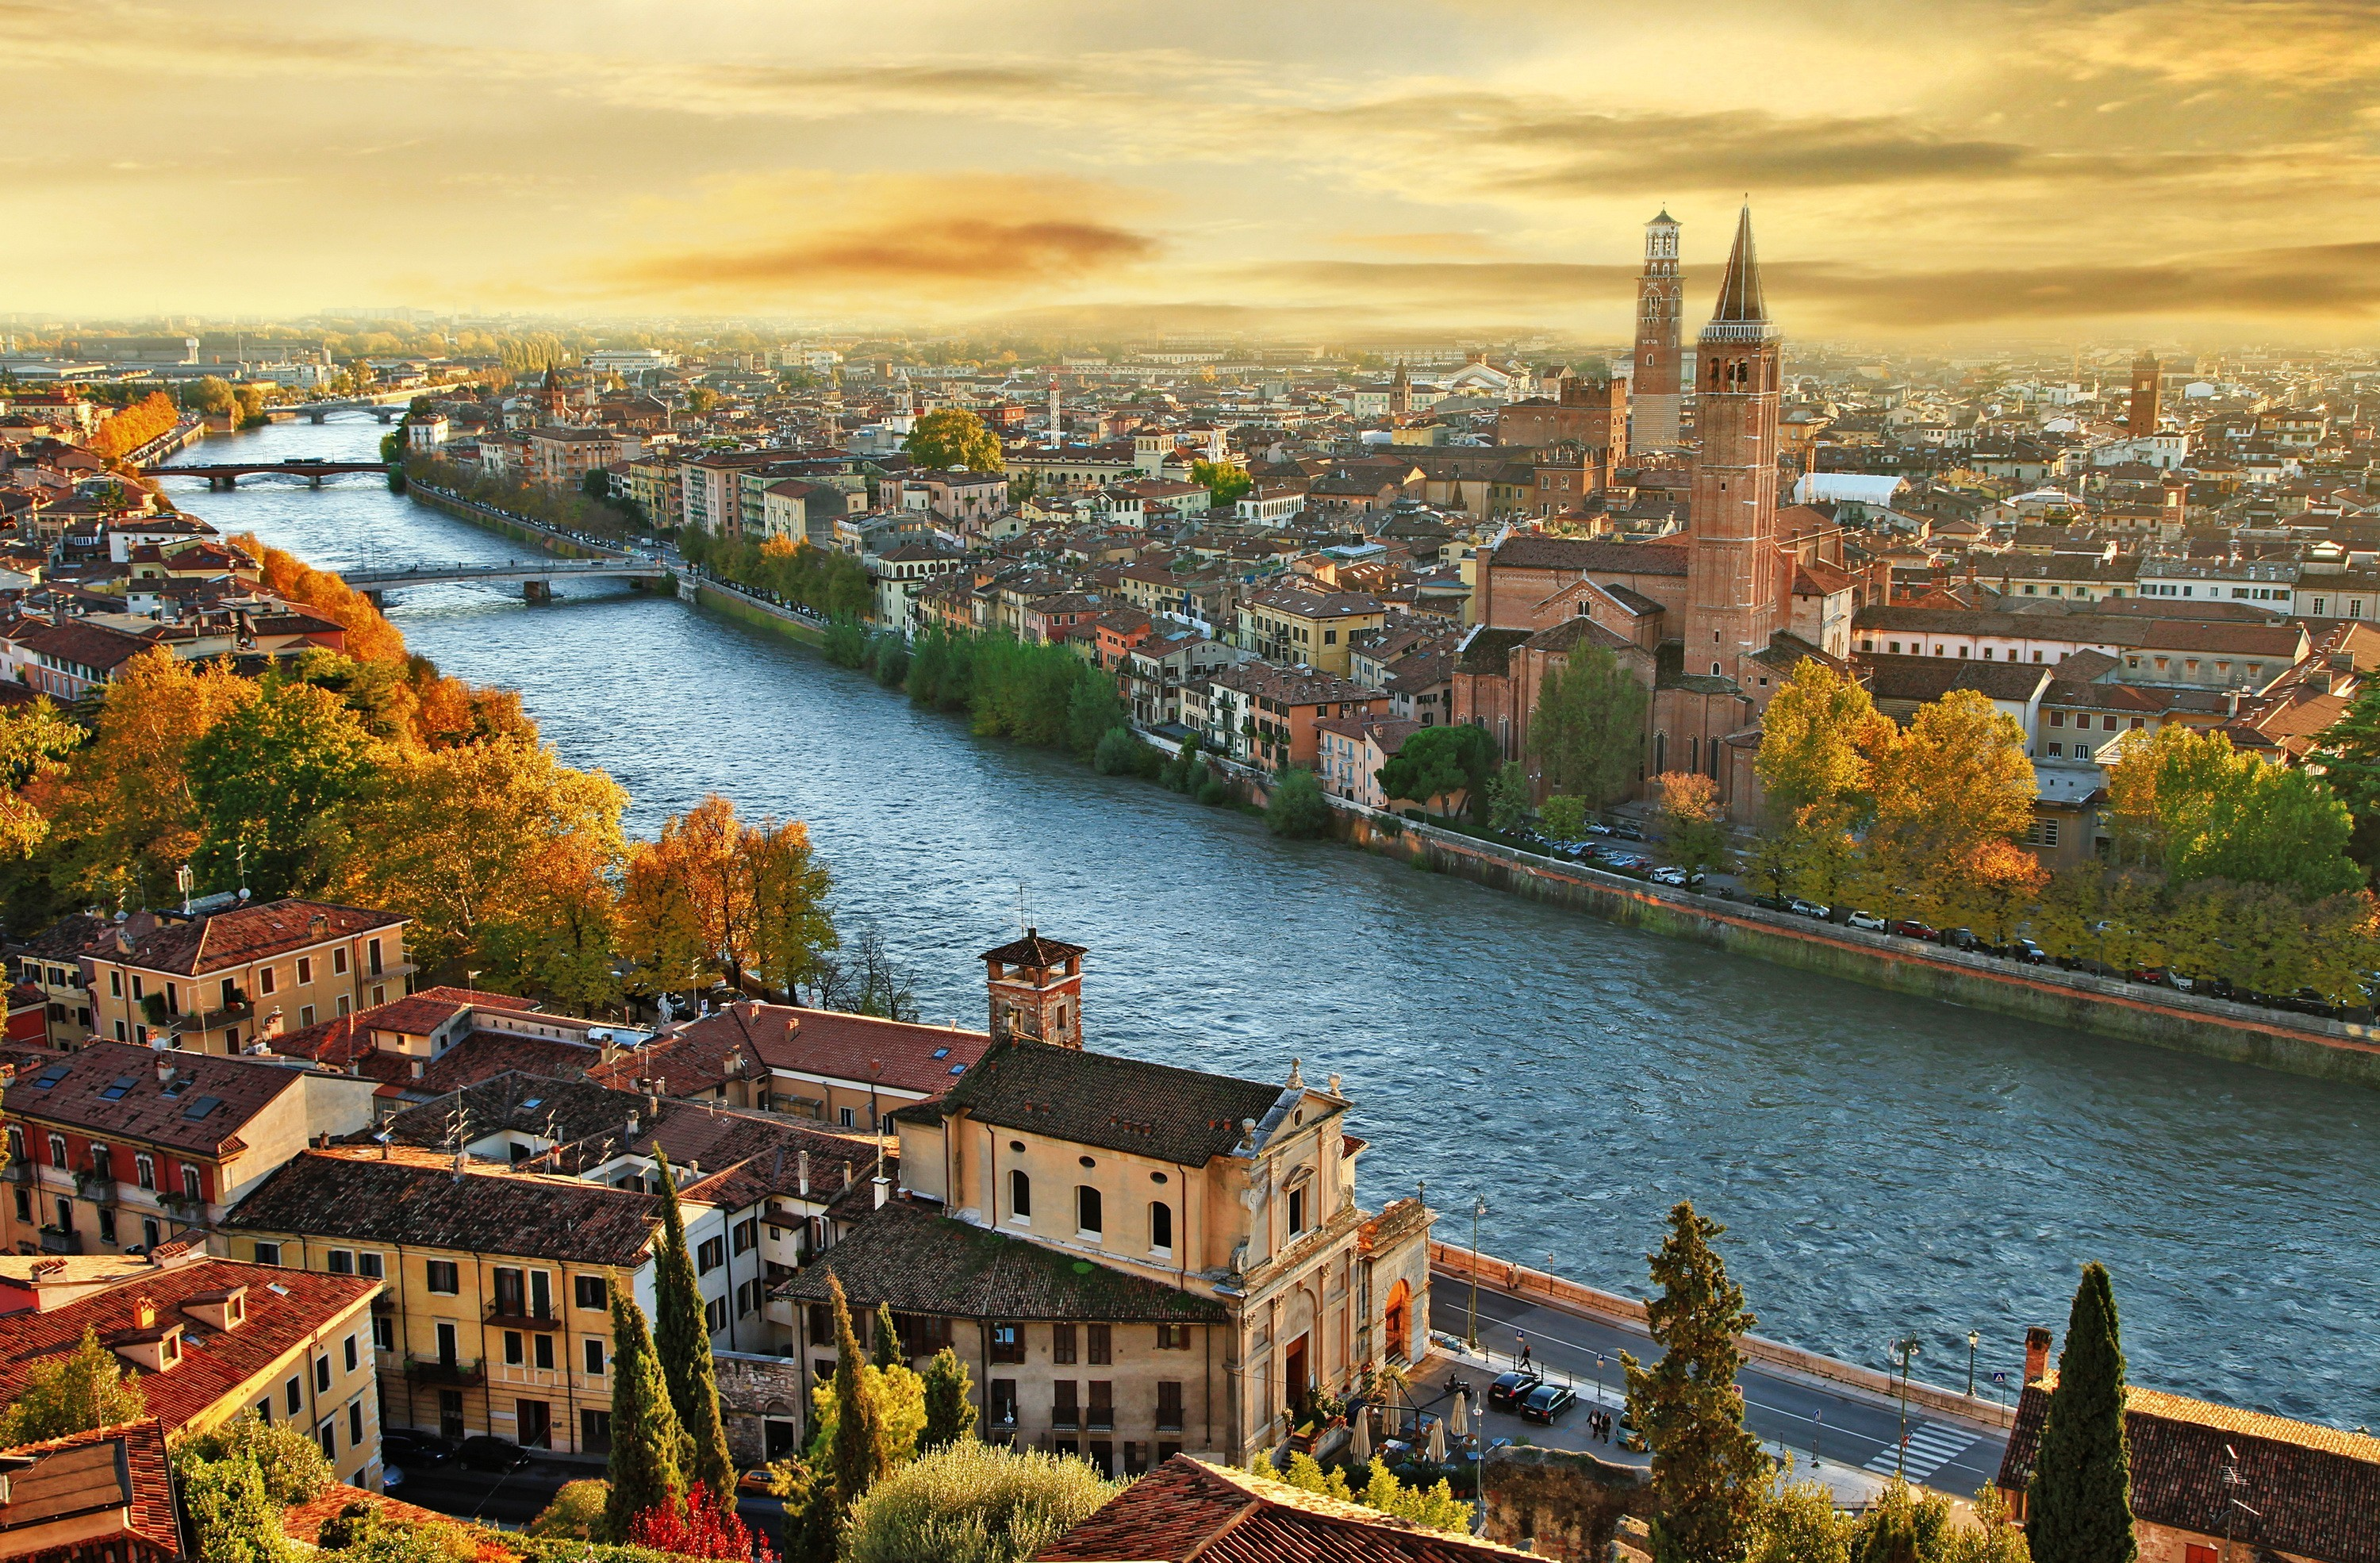 Italy Wallpaper Of 6 Verona Hd Wallpapers Backgrounds Wallpaper Abyss